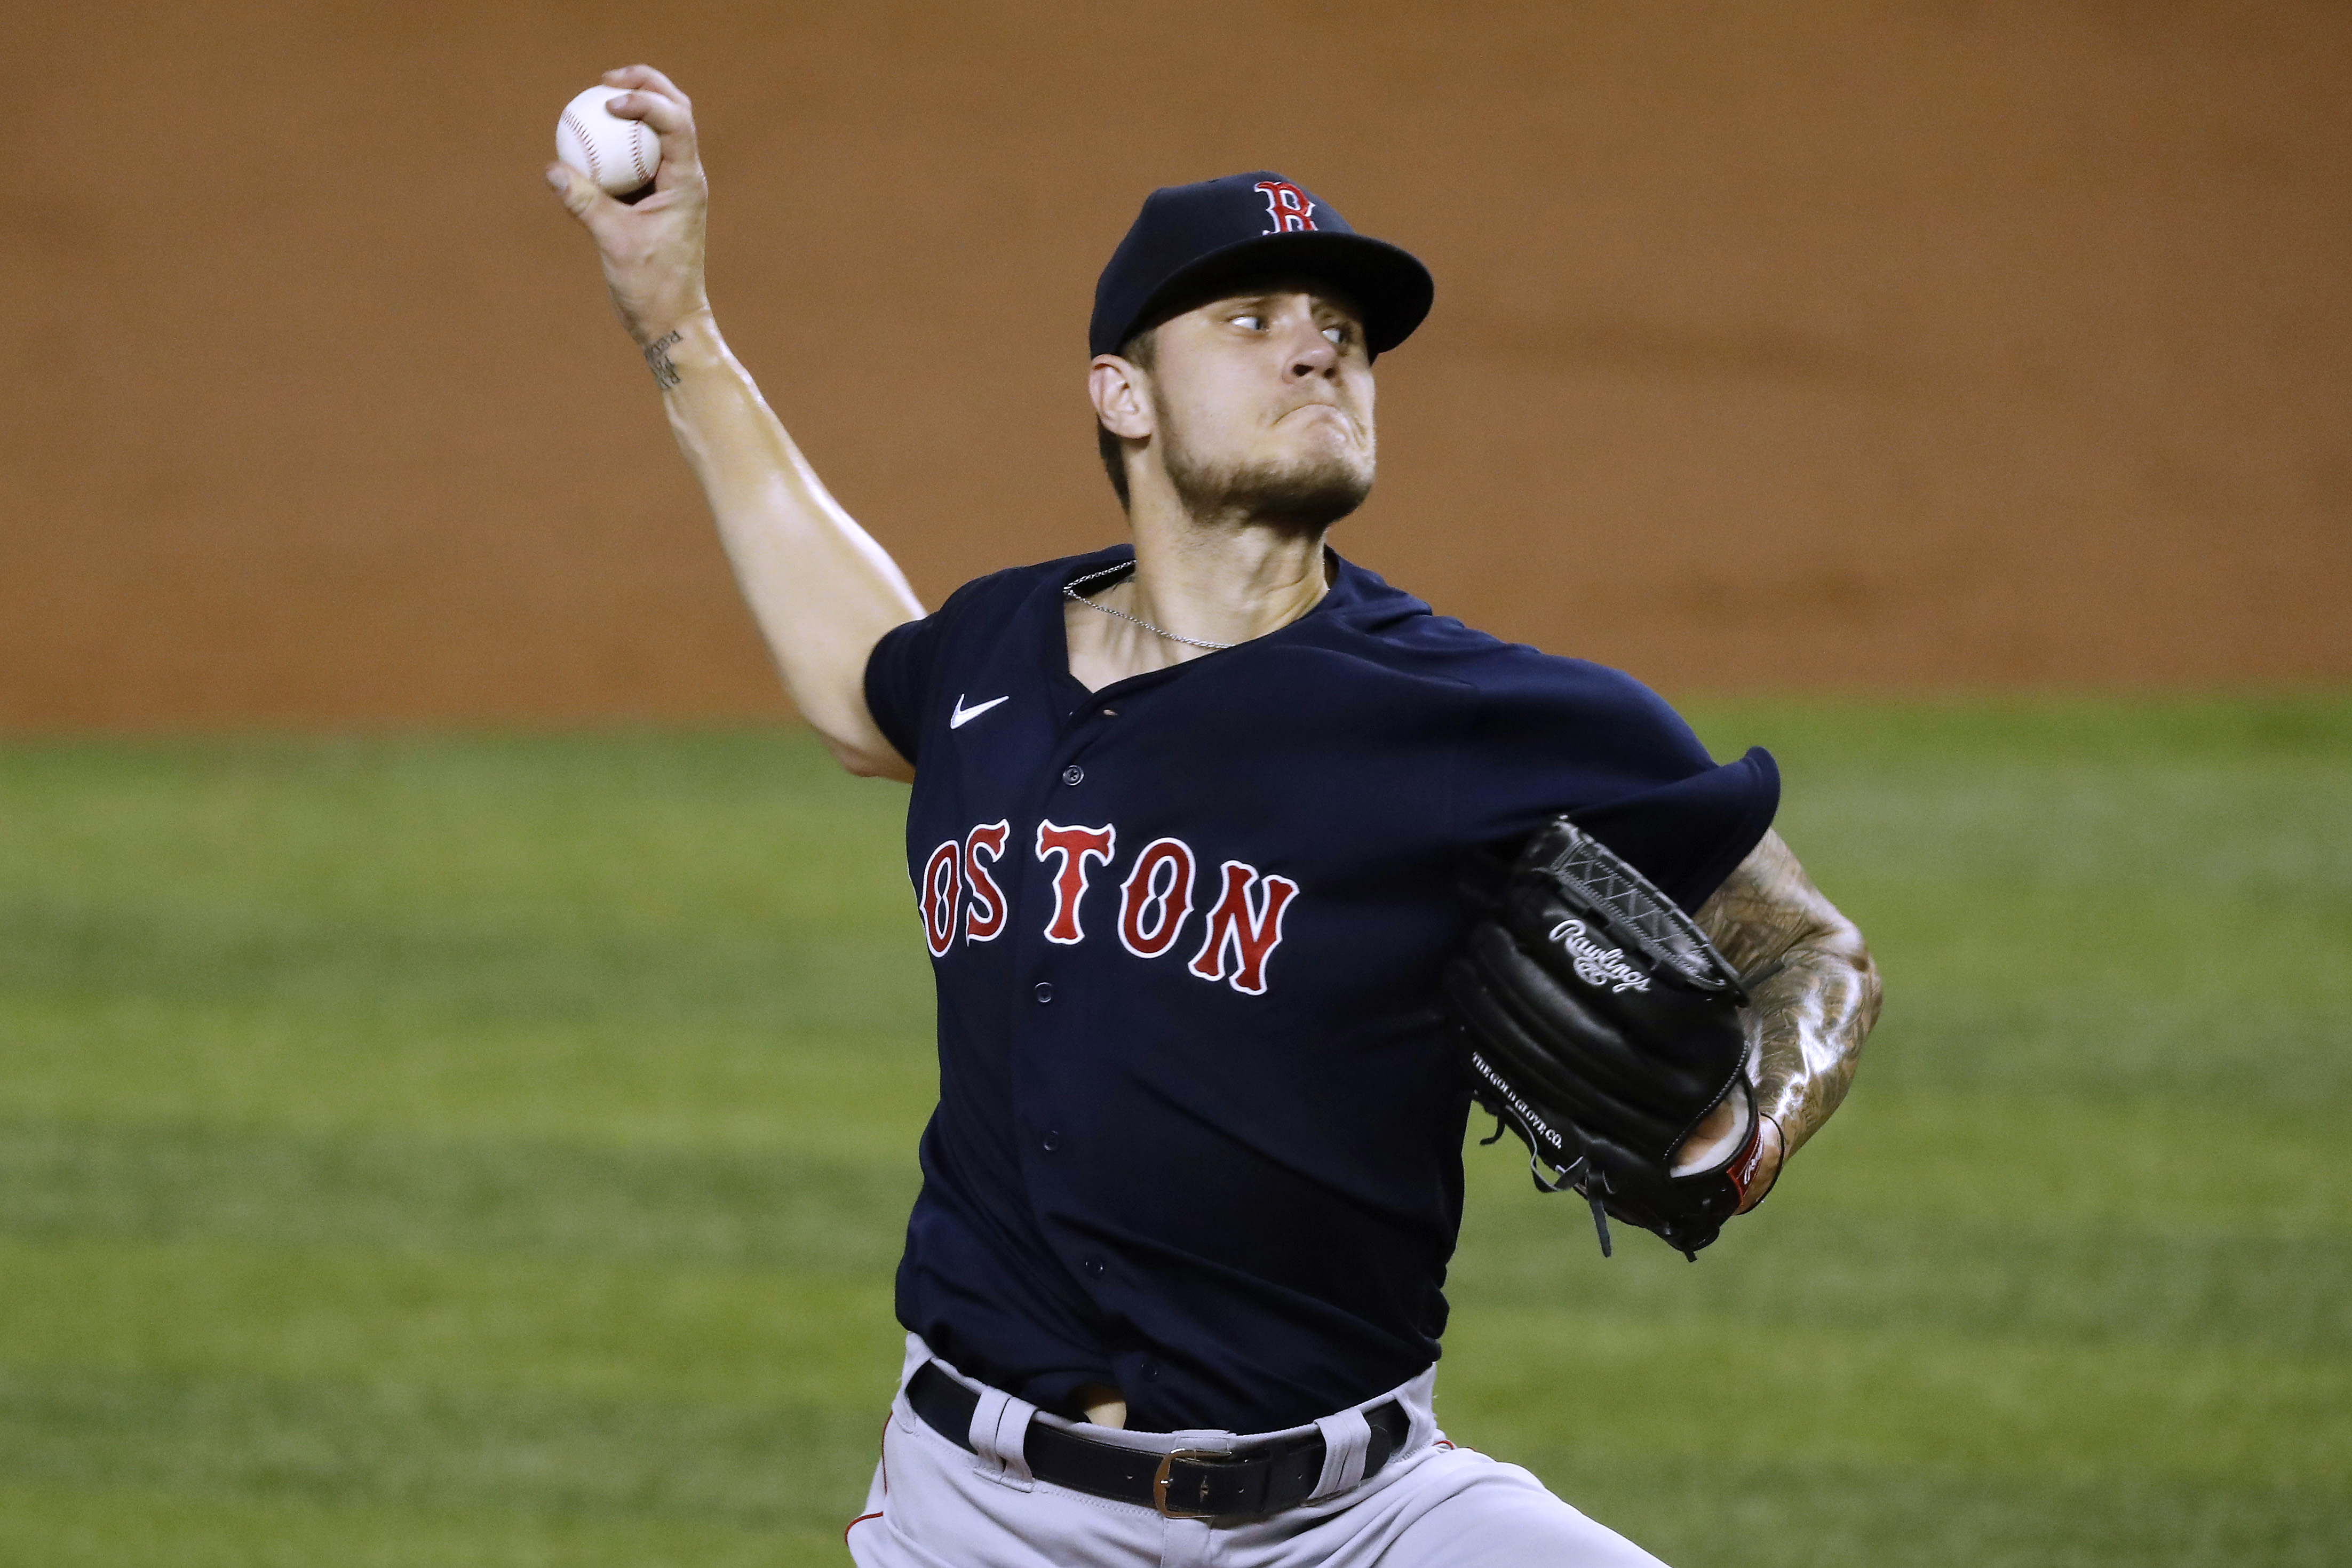 Tanner Houck's first season in Boston has impressively made him a top Boston sports athlete.